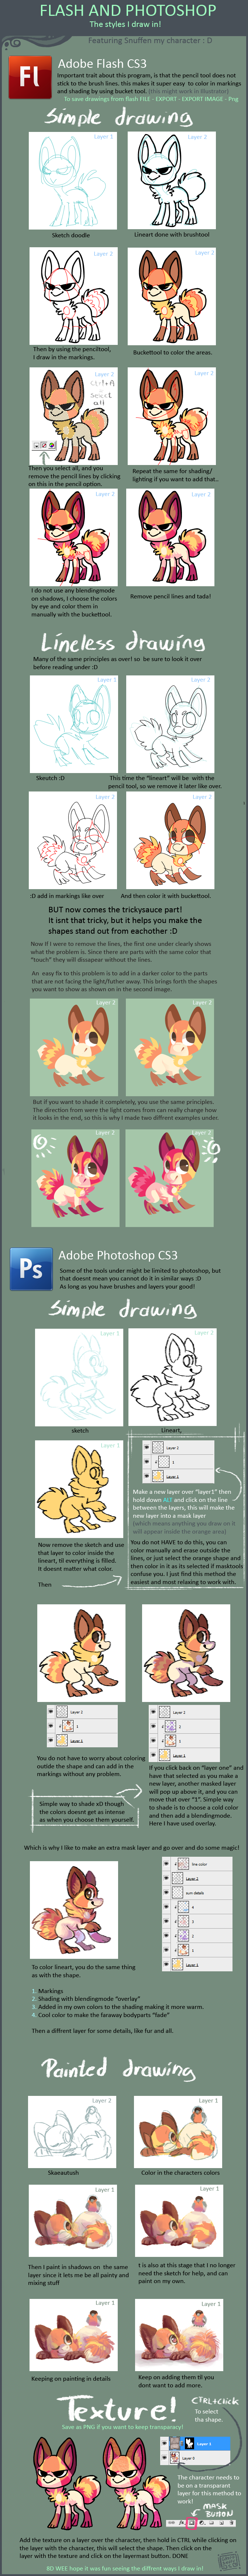 Flash and photoshop tutorial on how I use them by griffsnuff